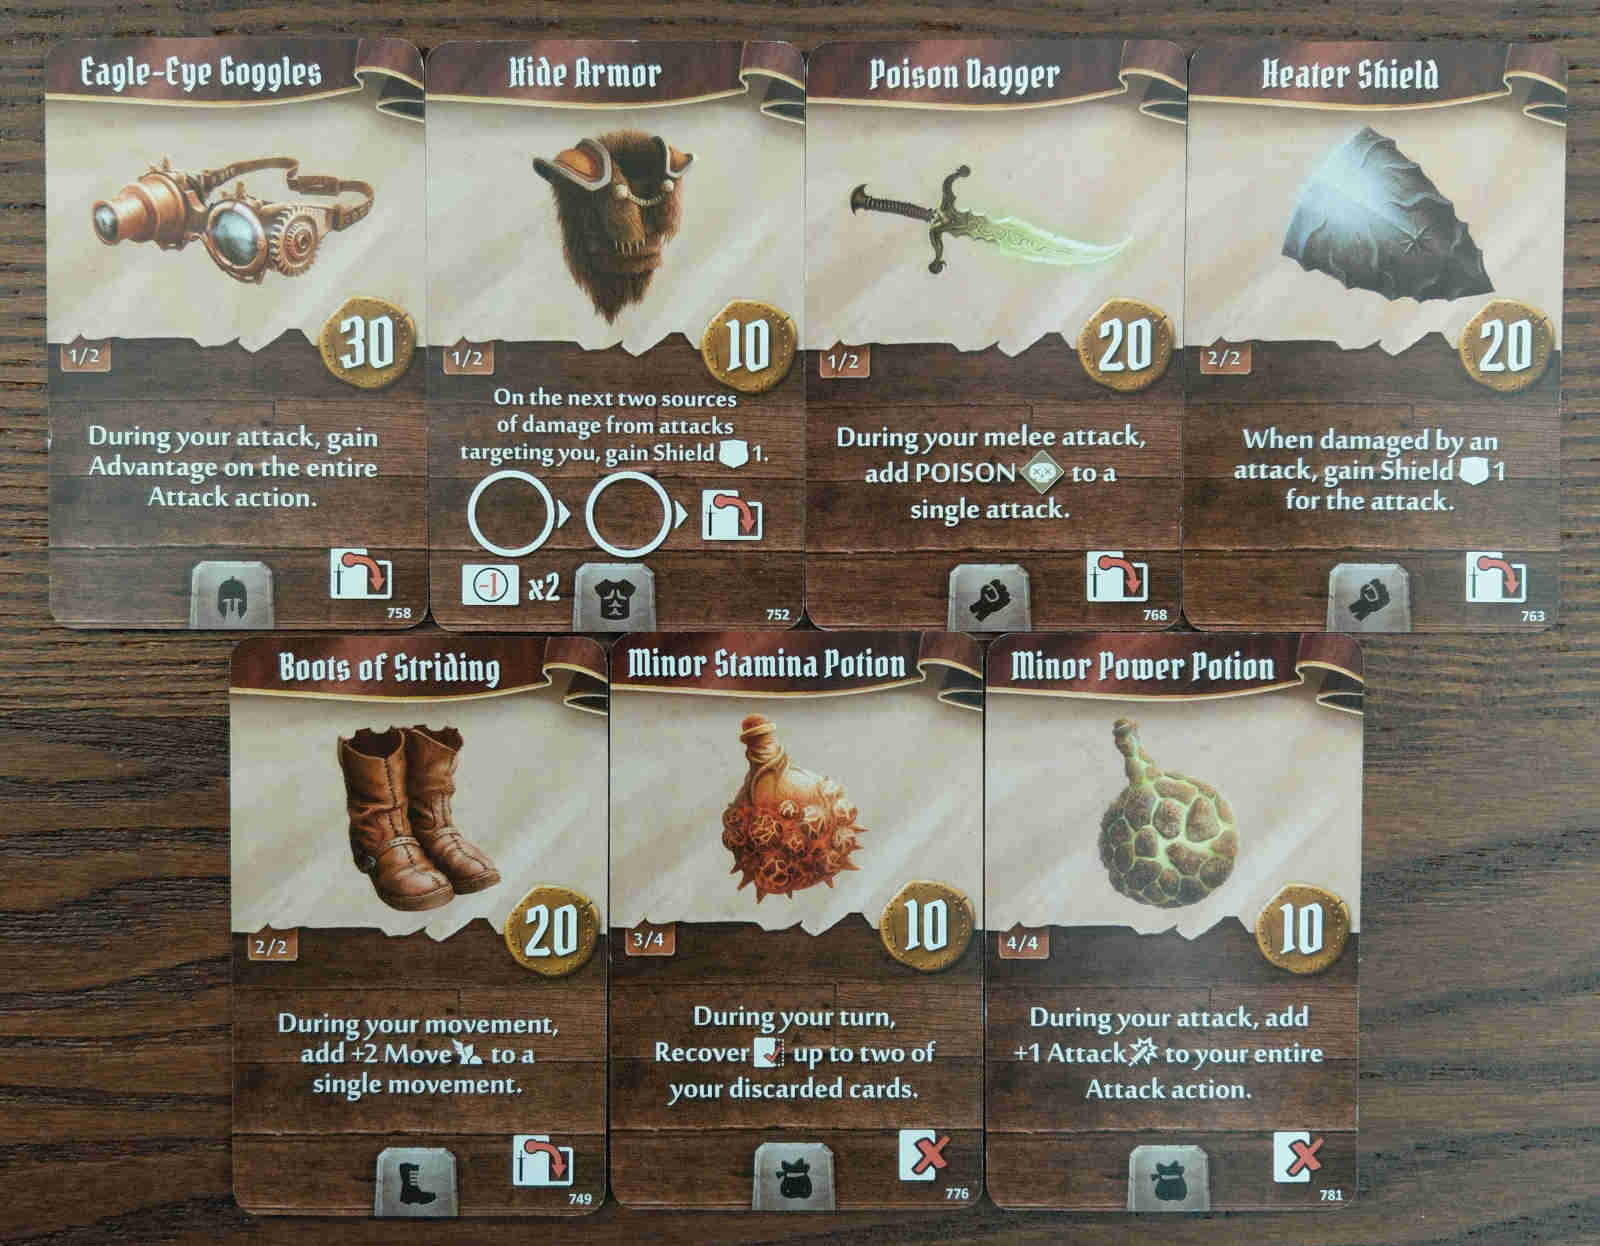 Quartermaster starting item cards - Eagle-Eye Goggles, Hide Armor, Poison Dagger, Heater Shield, Boots of Striding, Minor Stamina Potion and Minor Power Potion